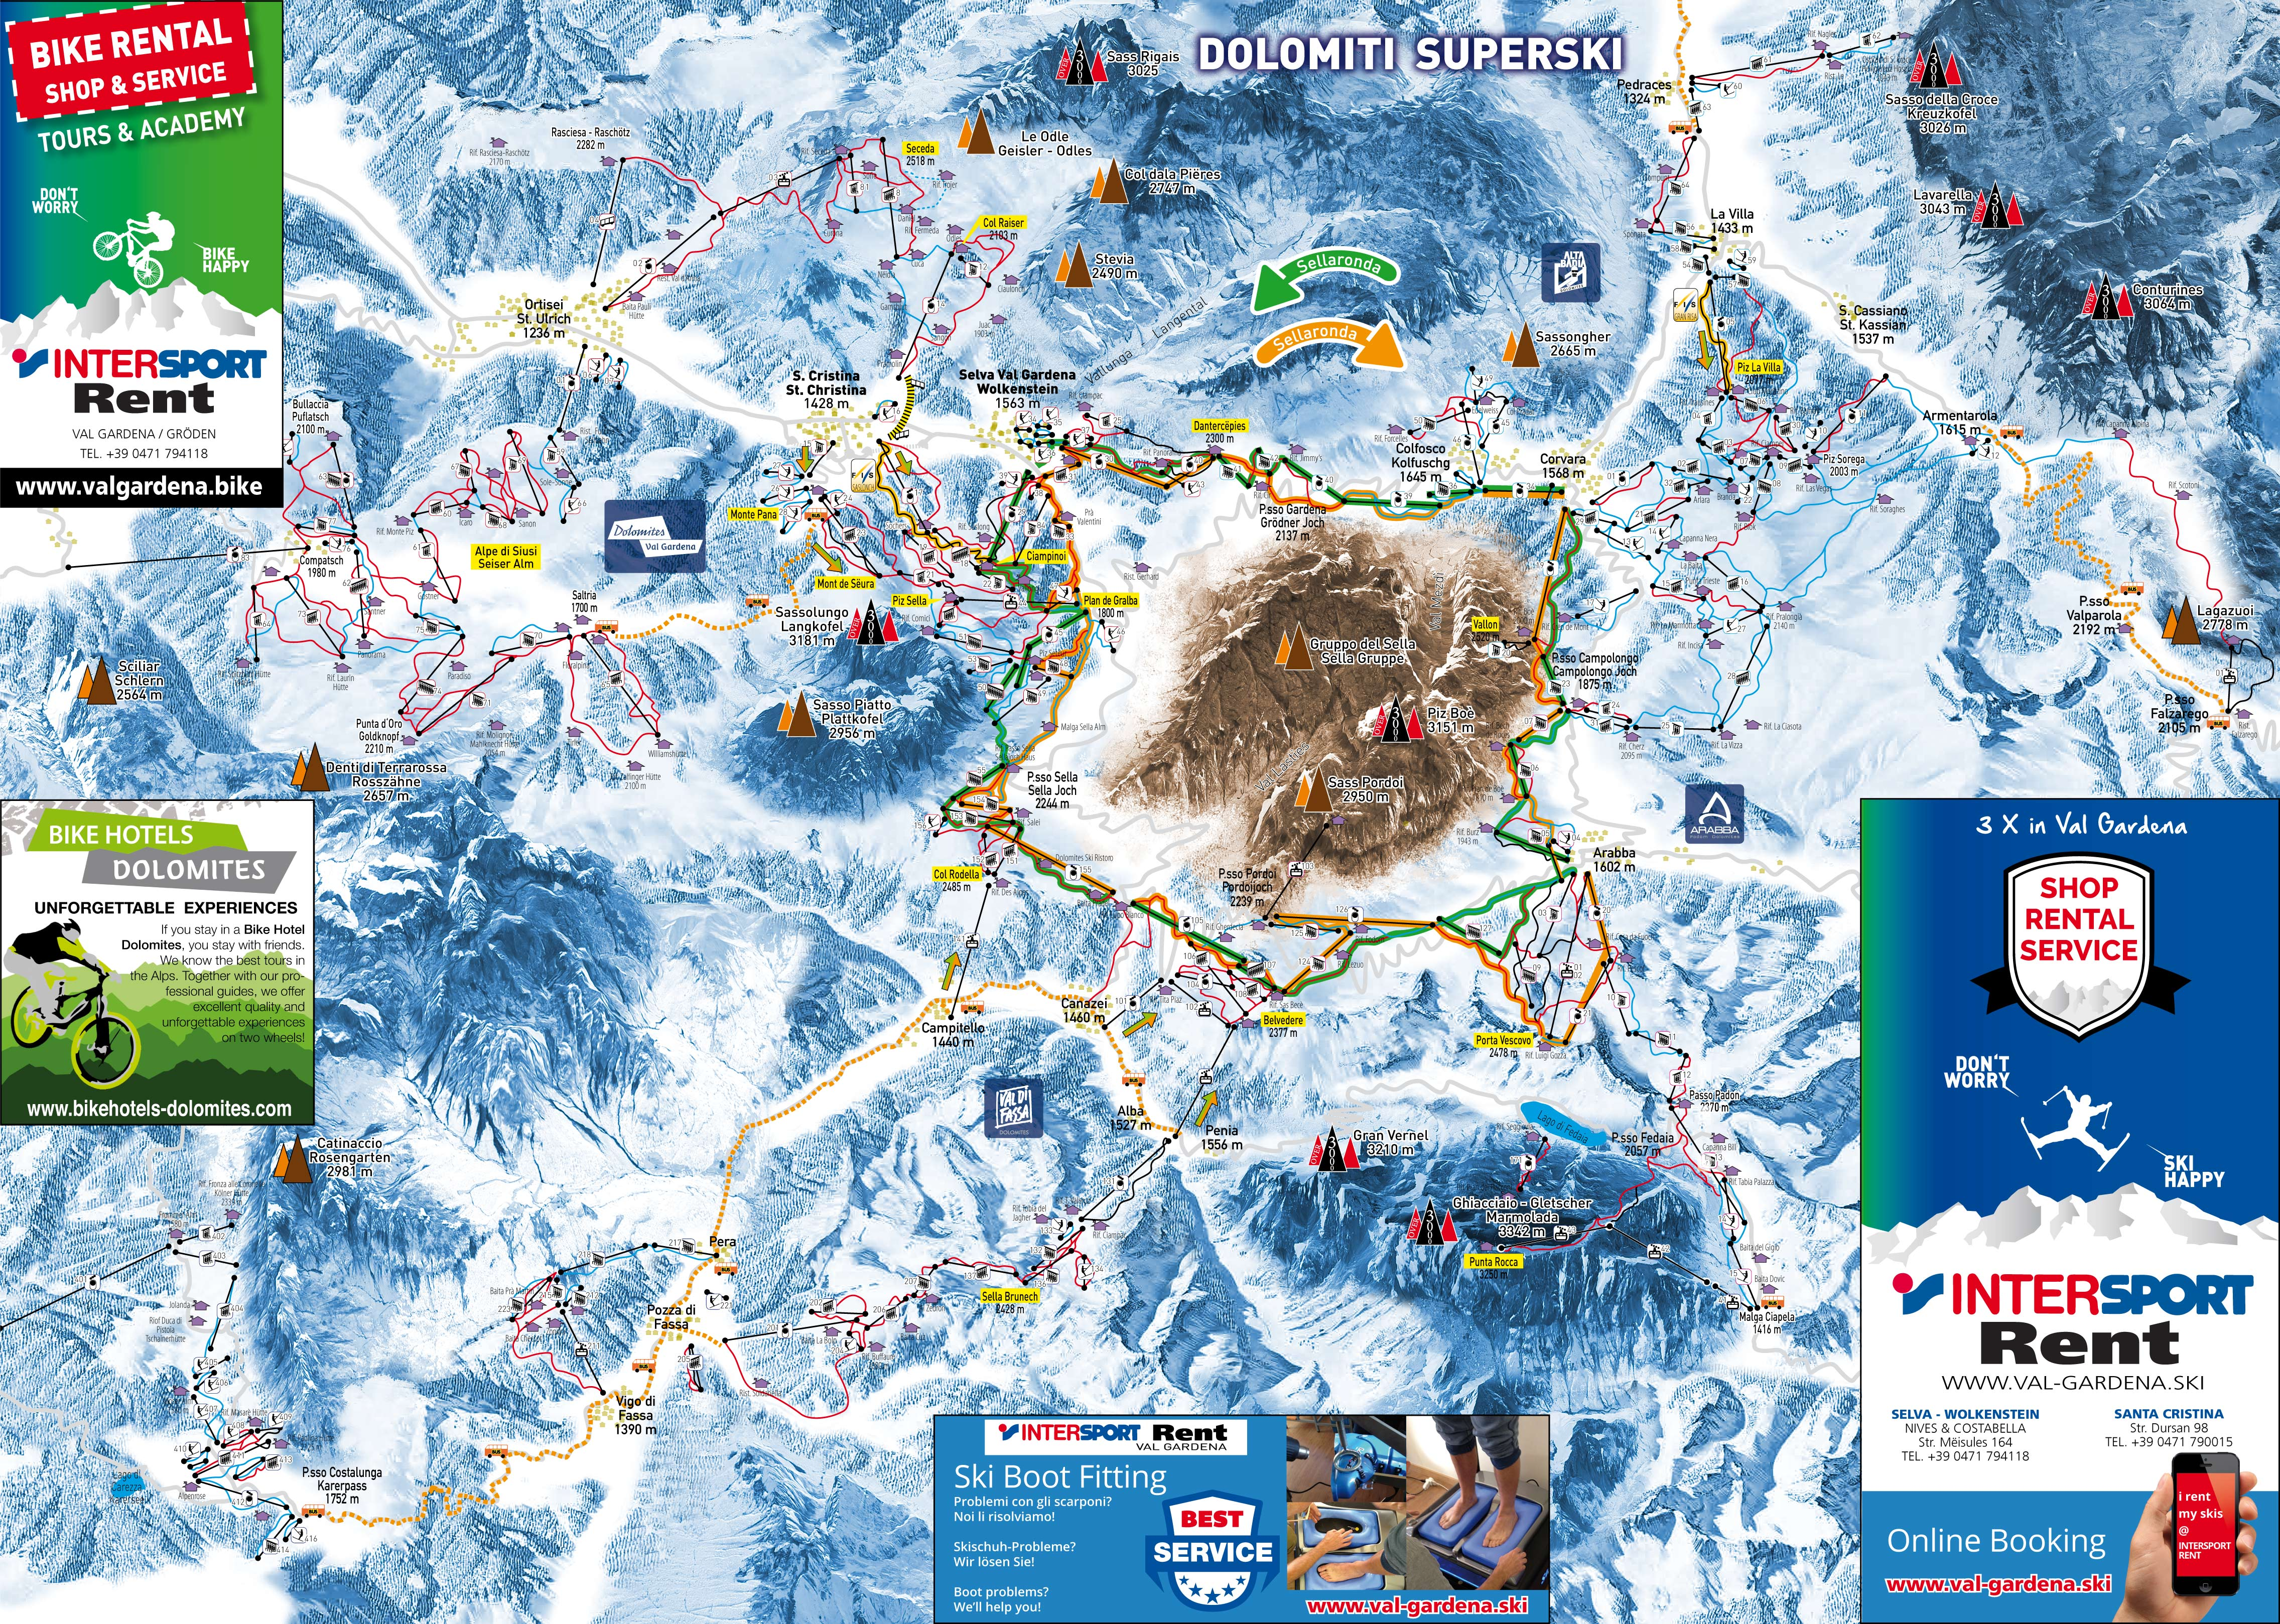 Ski rental free ski storage delivery service Ski school Ski map